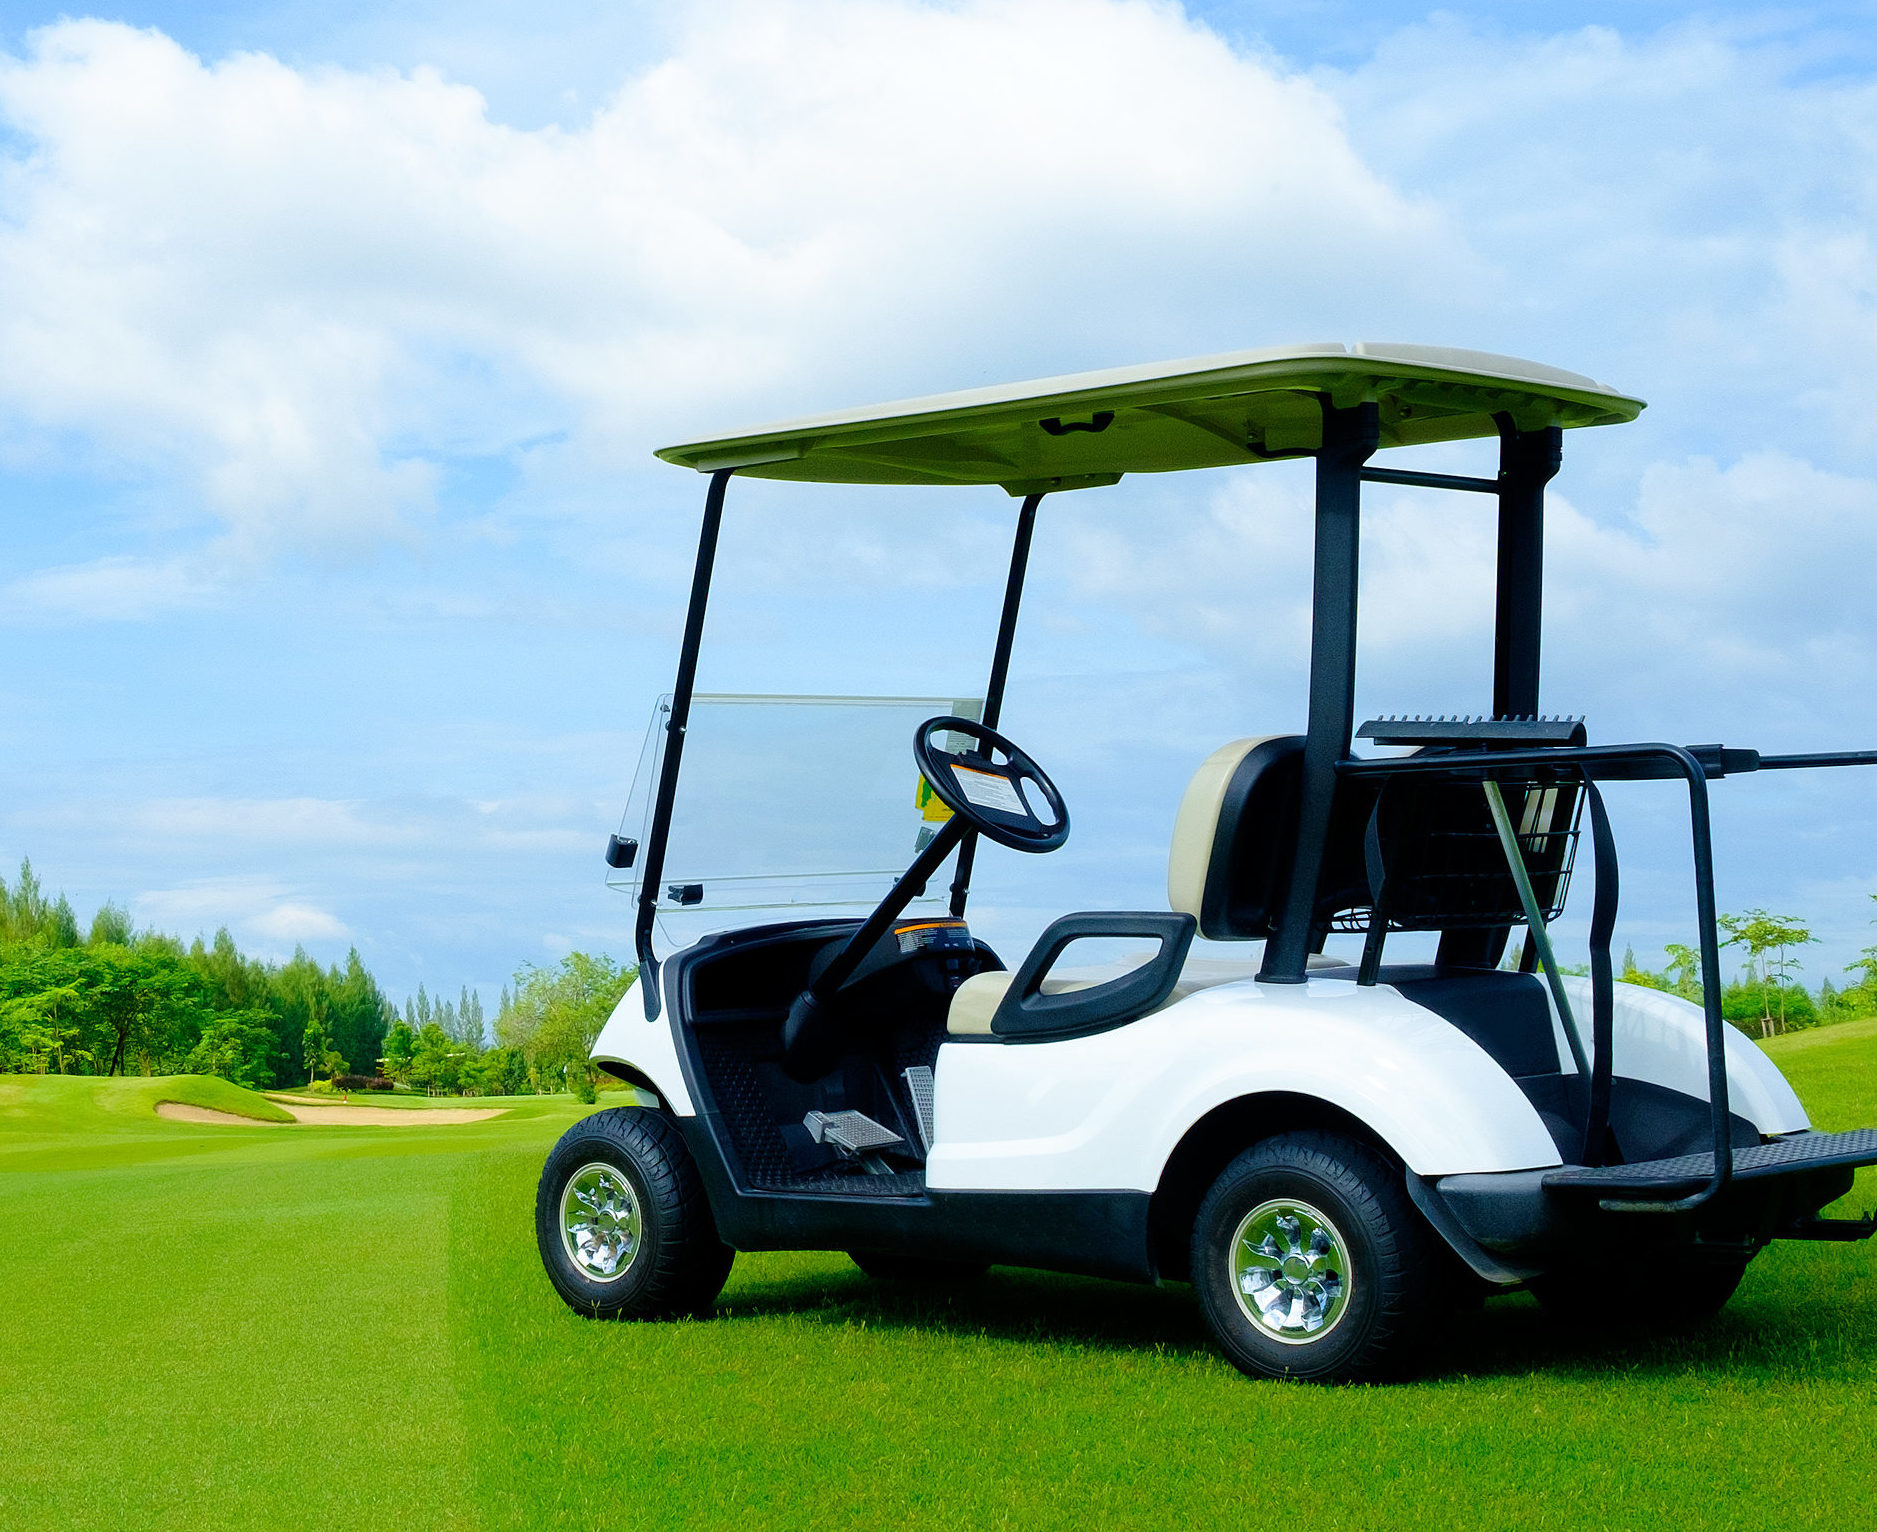 golf cart on green lawn with blue sky and cloud for background 1877x1532